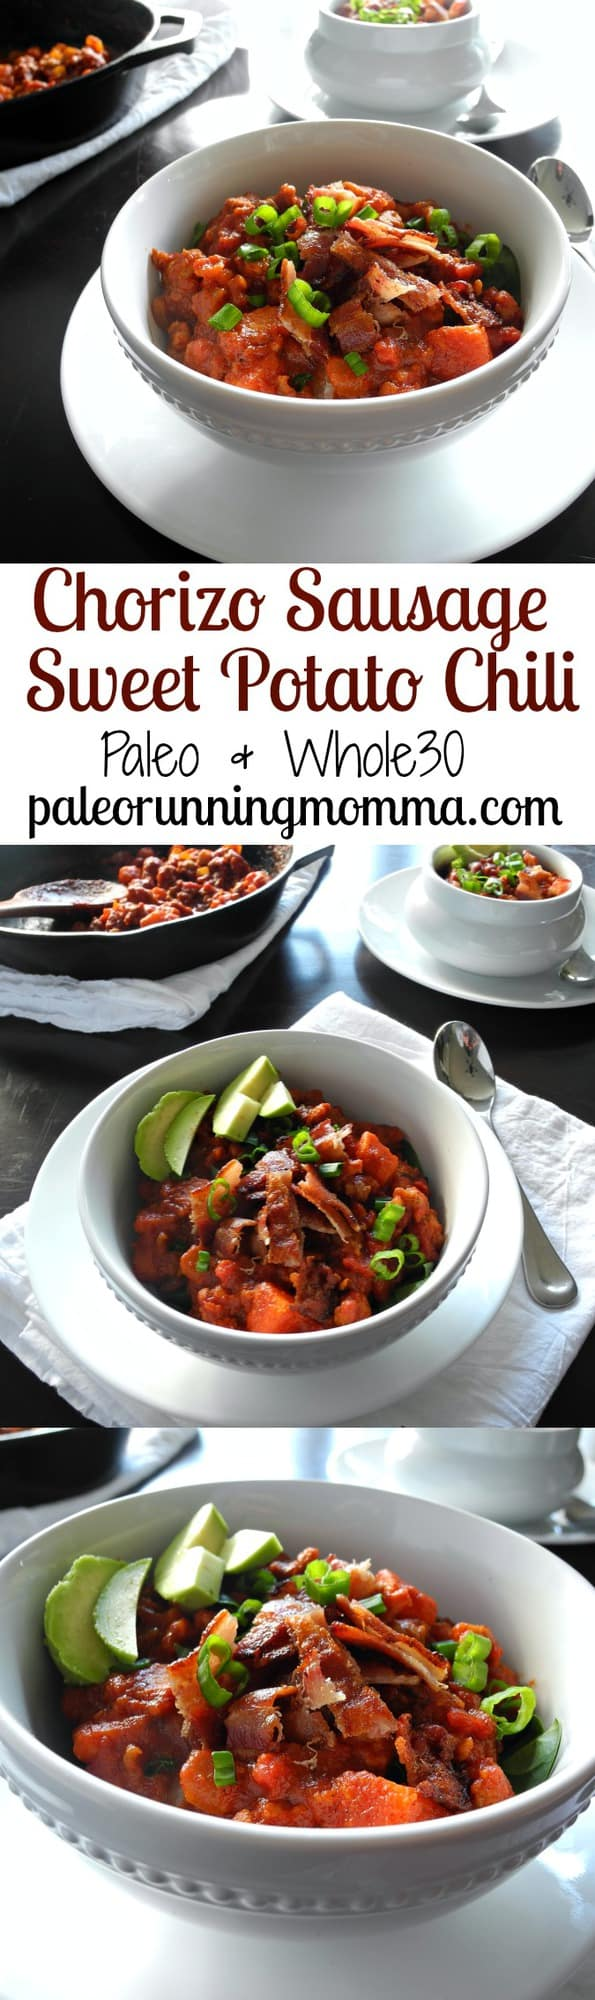 Chorizo Sweet Potato Chili with bacon - Paleo, Whole30 friendly hearty, chunky chili with tons of flavor, ready in 30 minutes!